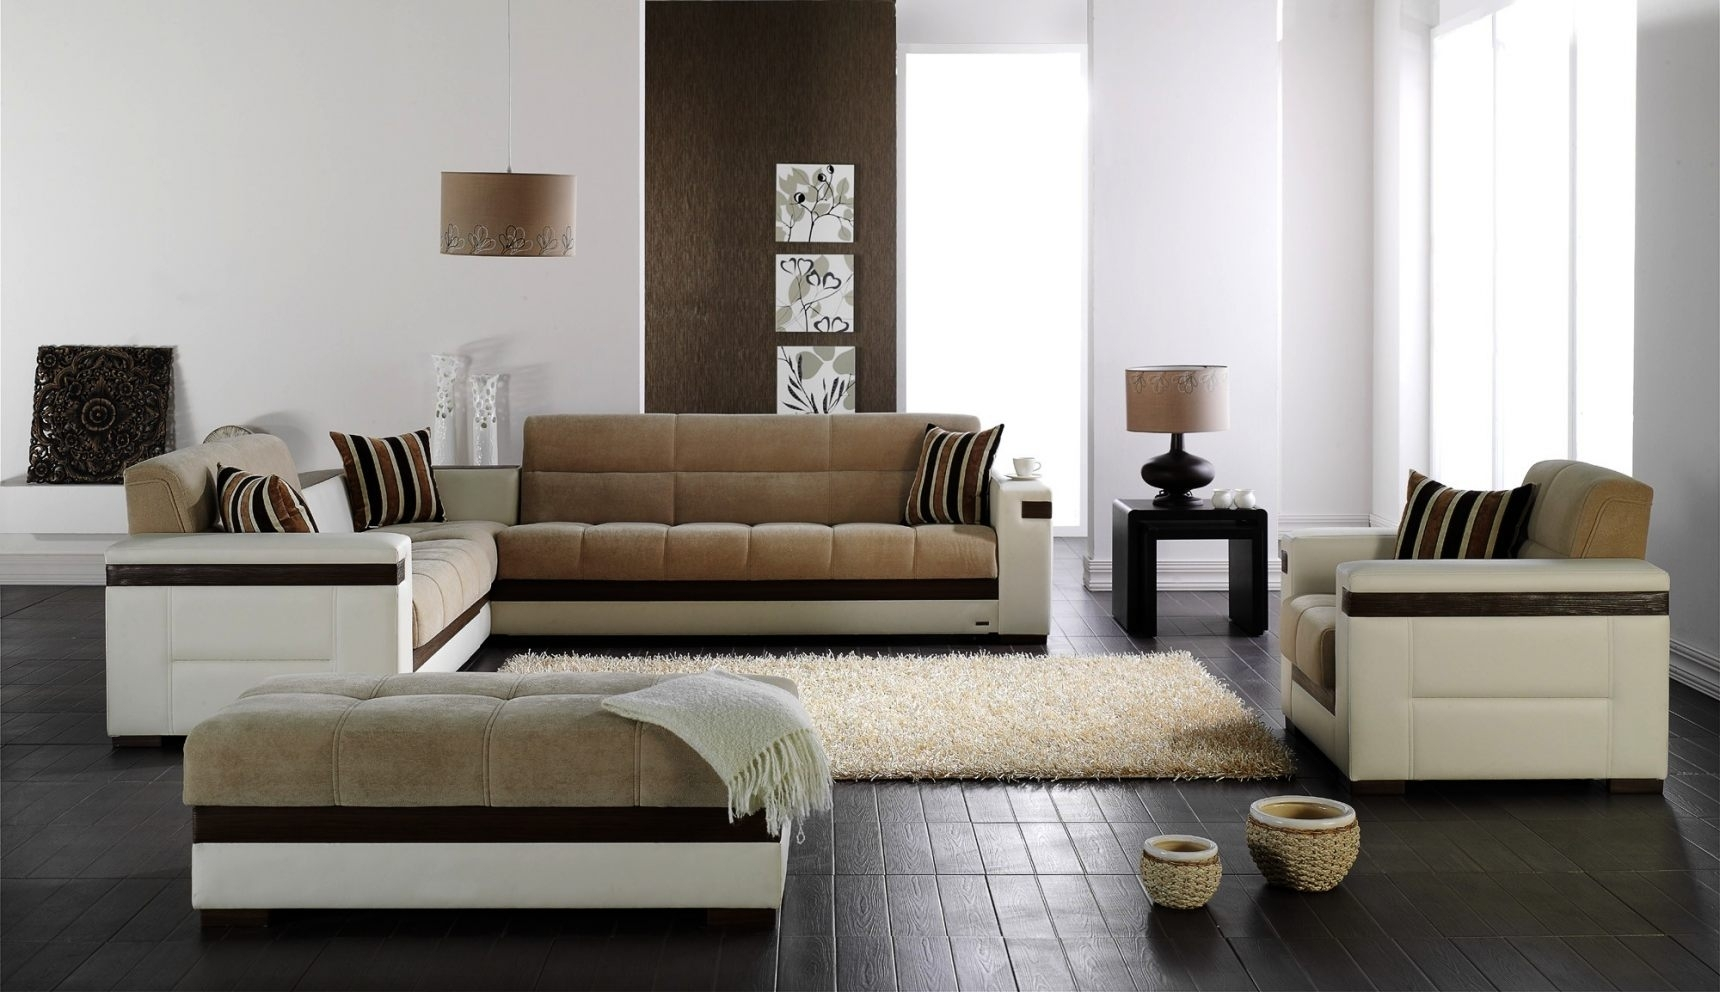 European Sectional Sofas | Good Fishborn Intended For Sectional Sofas From Europe (View 8 of 10)